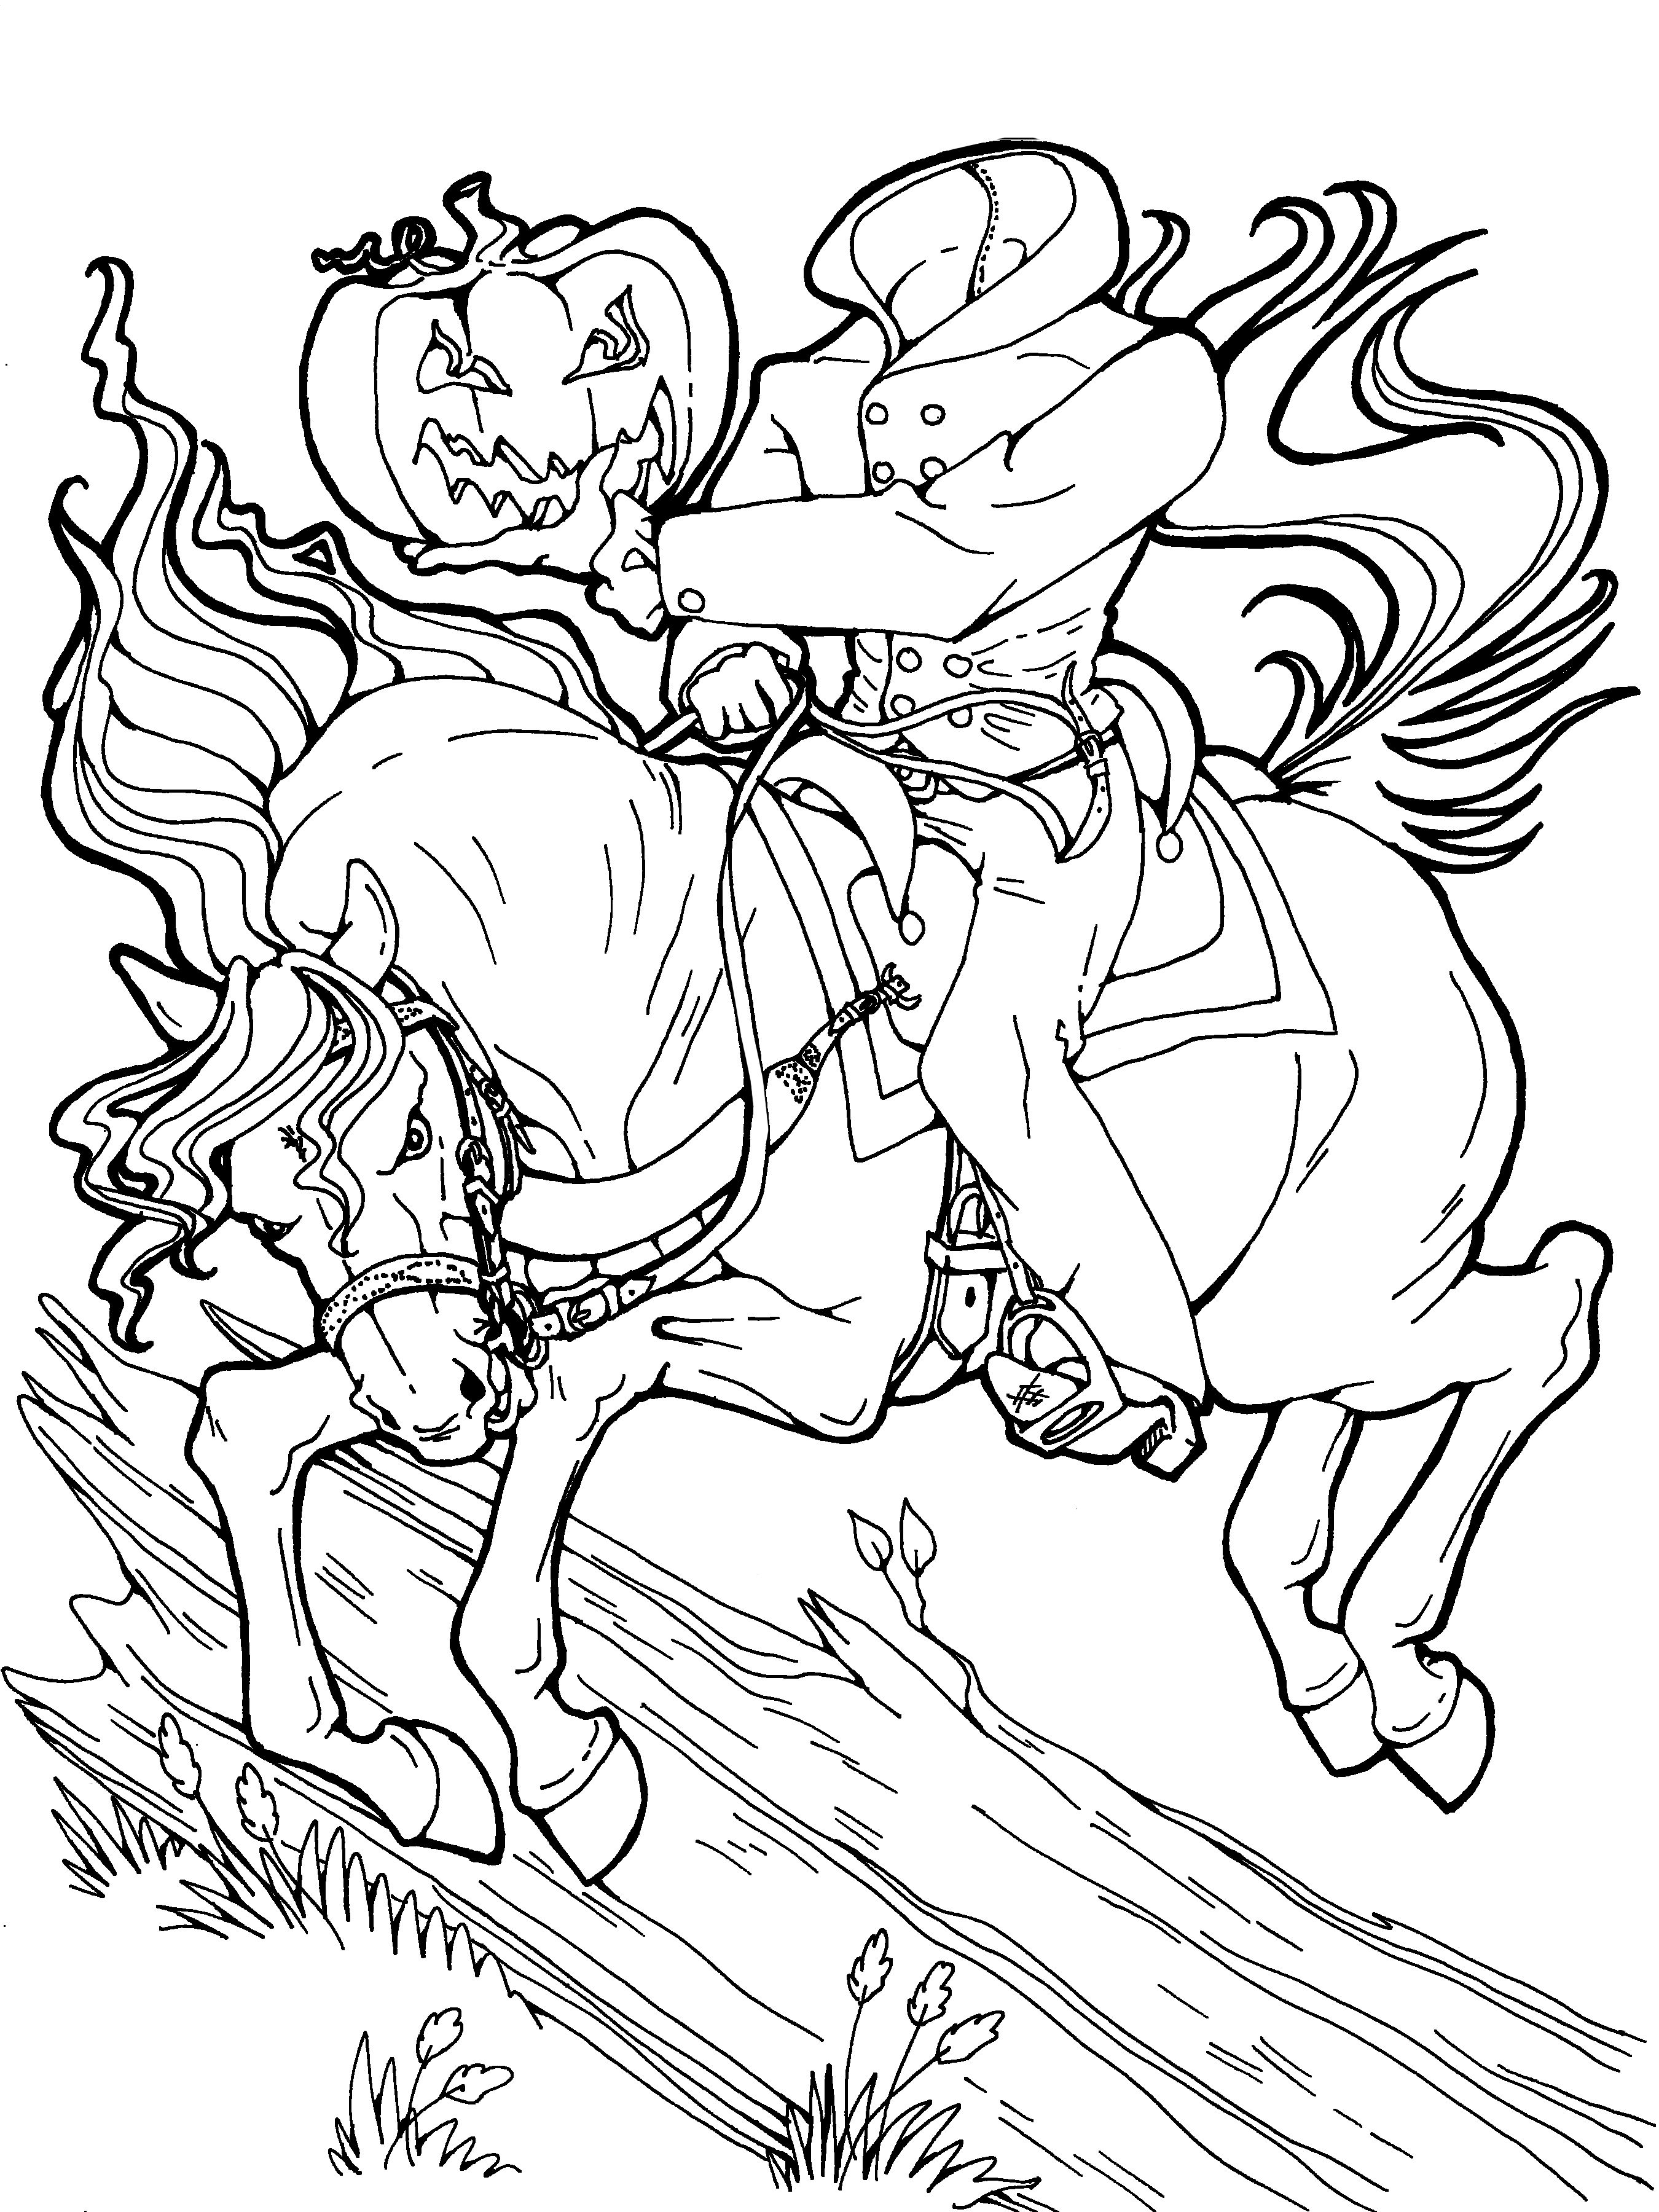 Headless Horseman Halloween Coloring Page Get More Halloween Downloadable Coloring Pages For Free Halloween Coloring Pages Halloween Coloring Coloring Pages